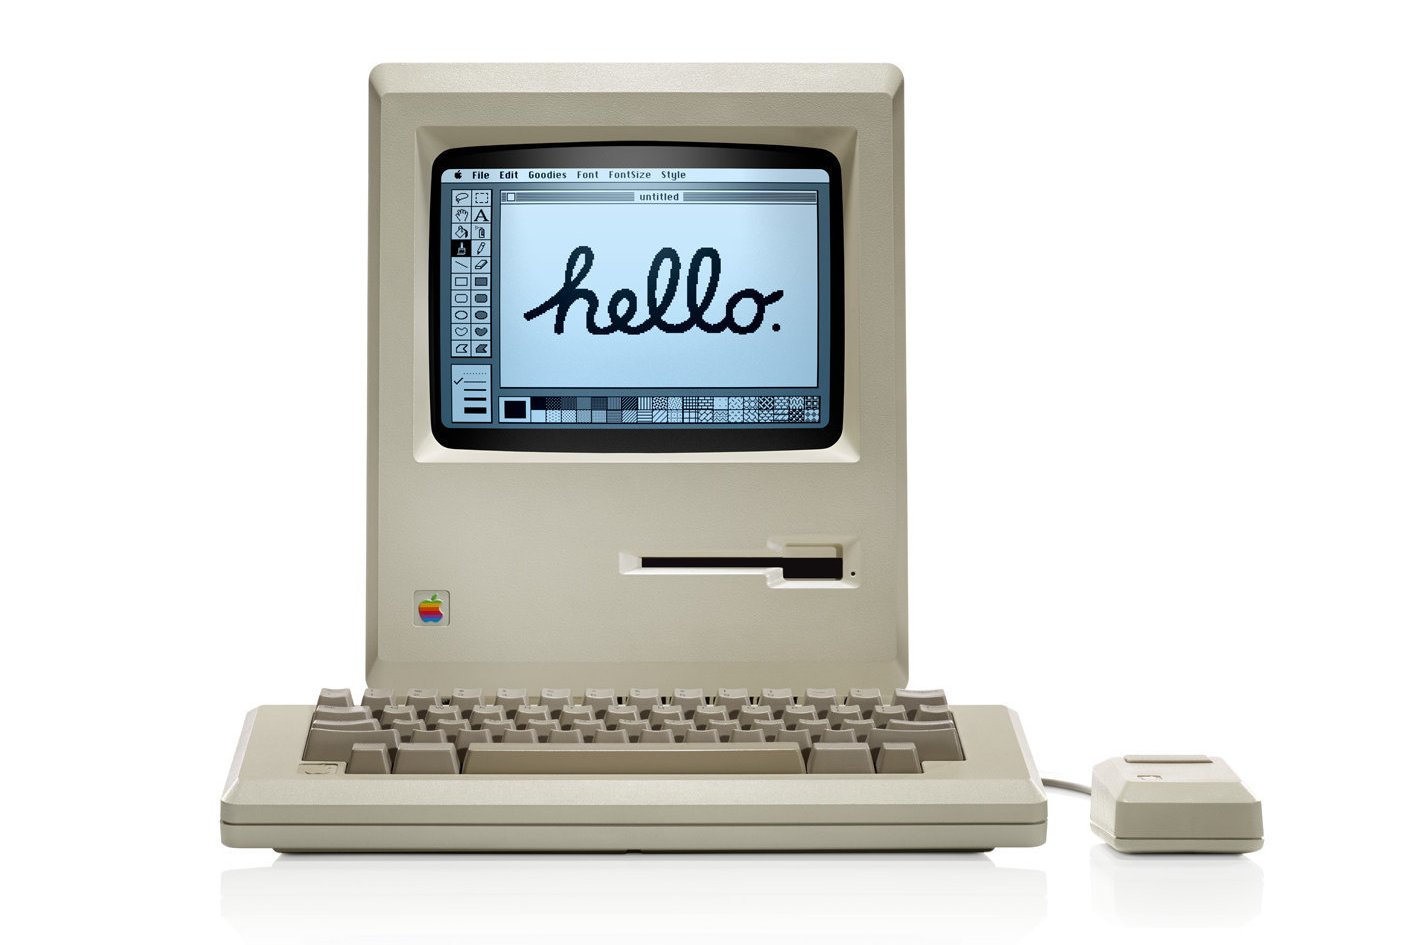 Apple introduces the Macintosh personal computer (1984)